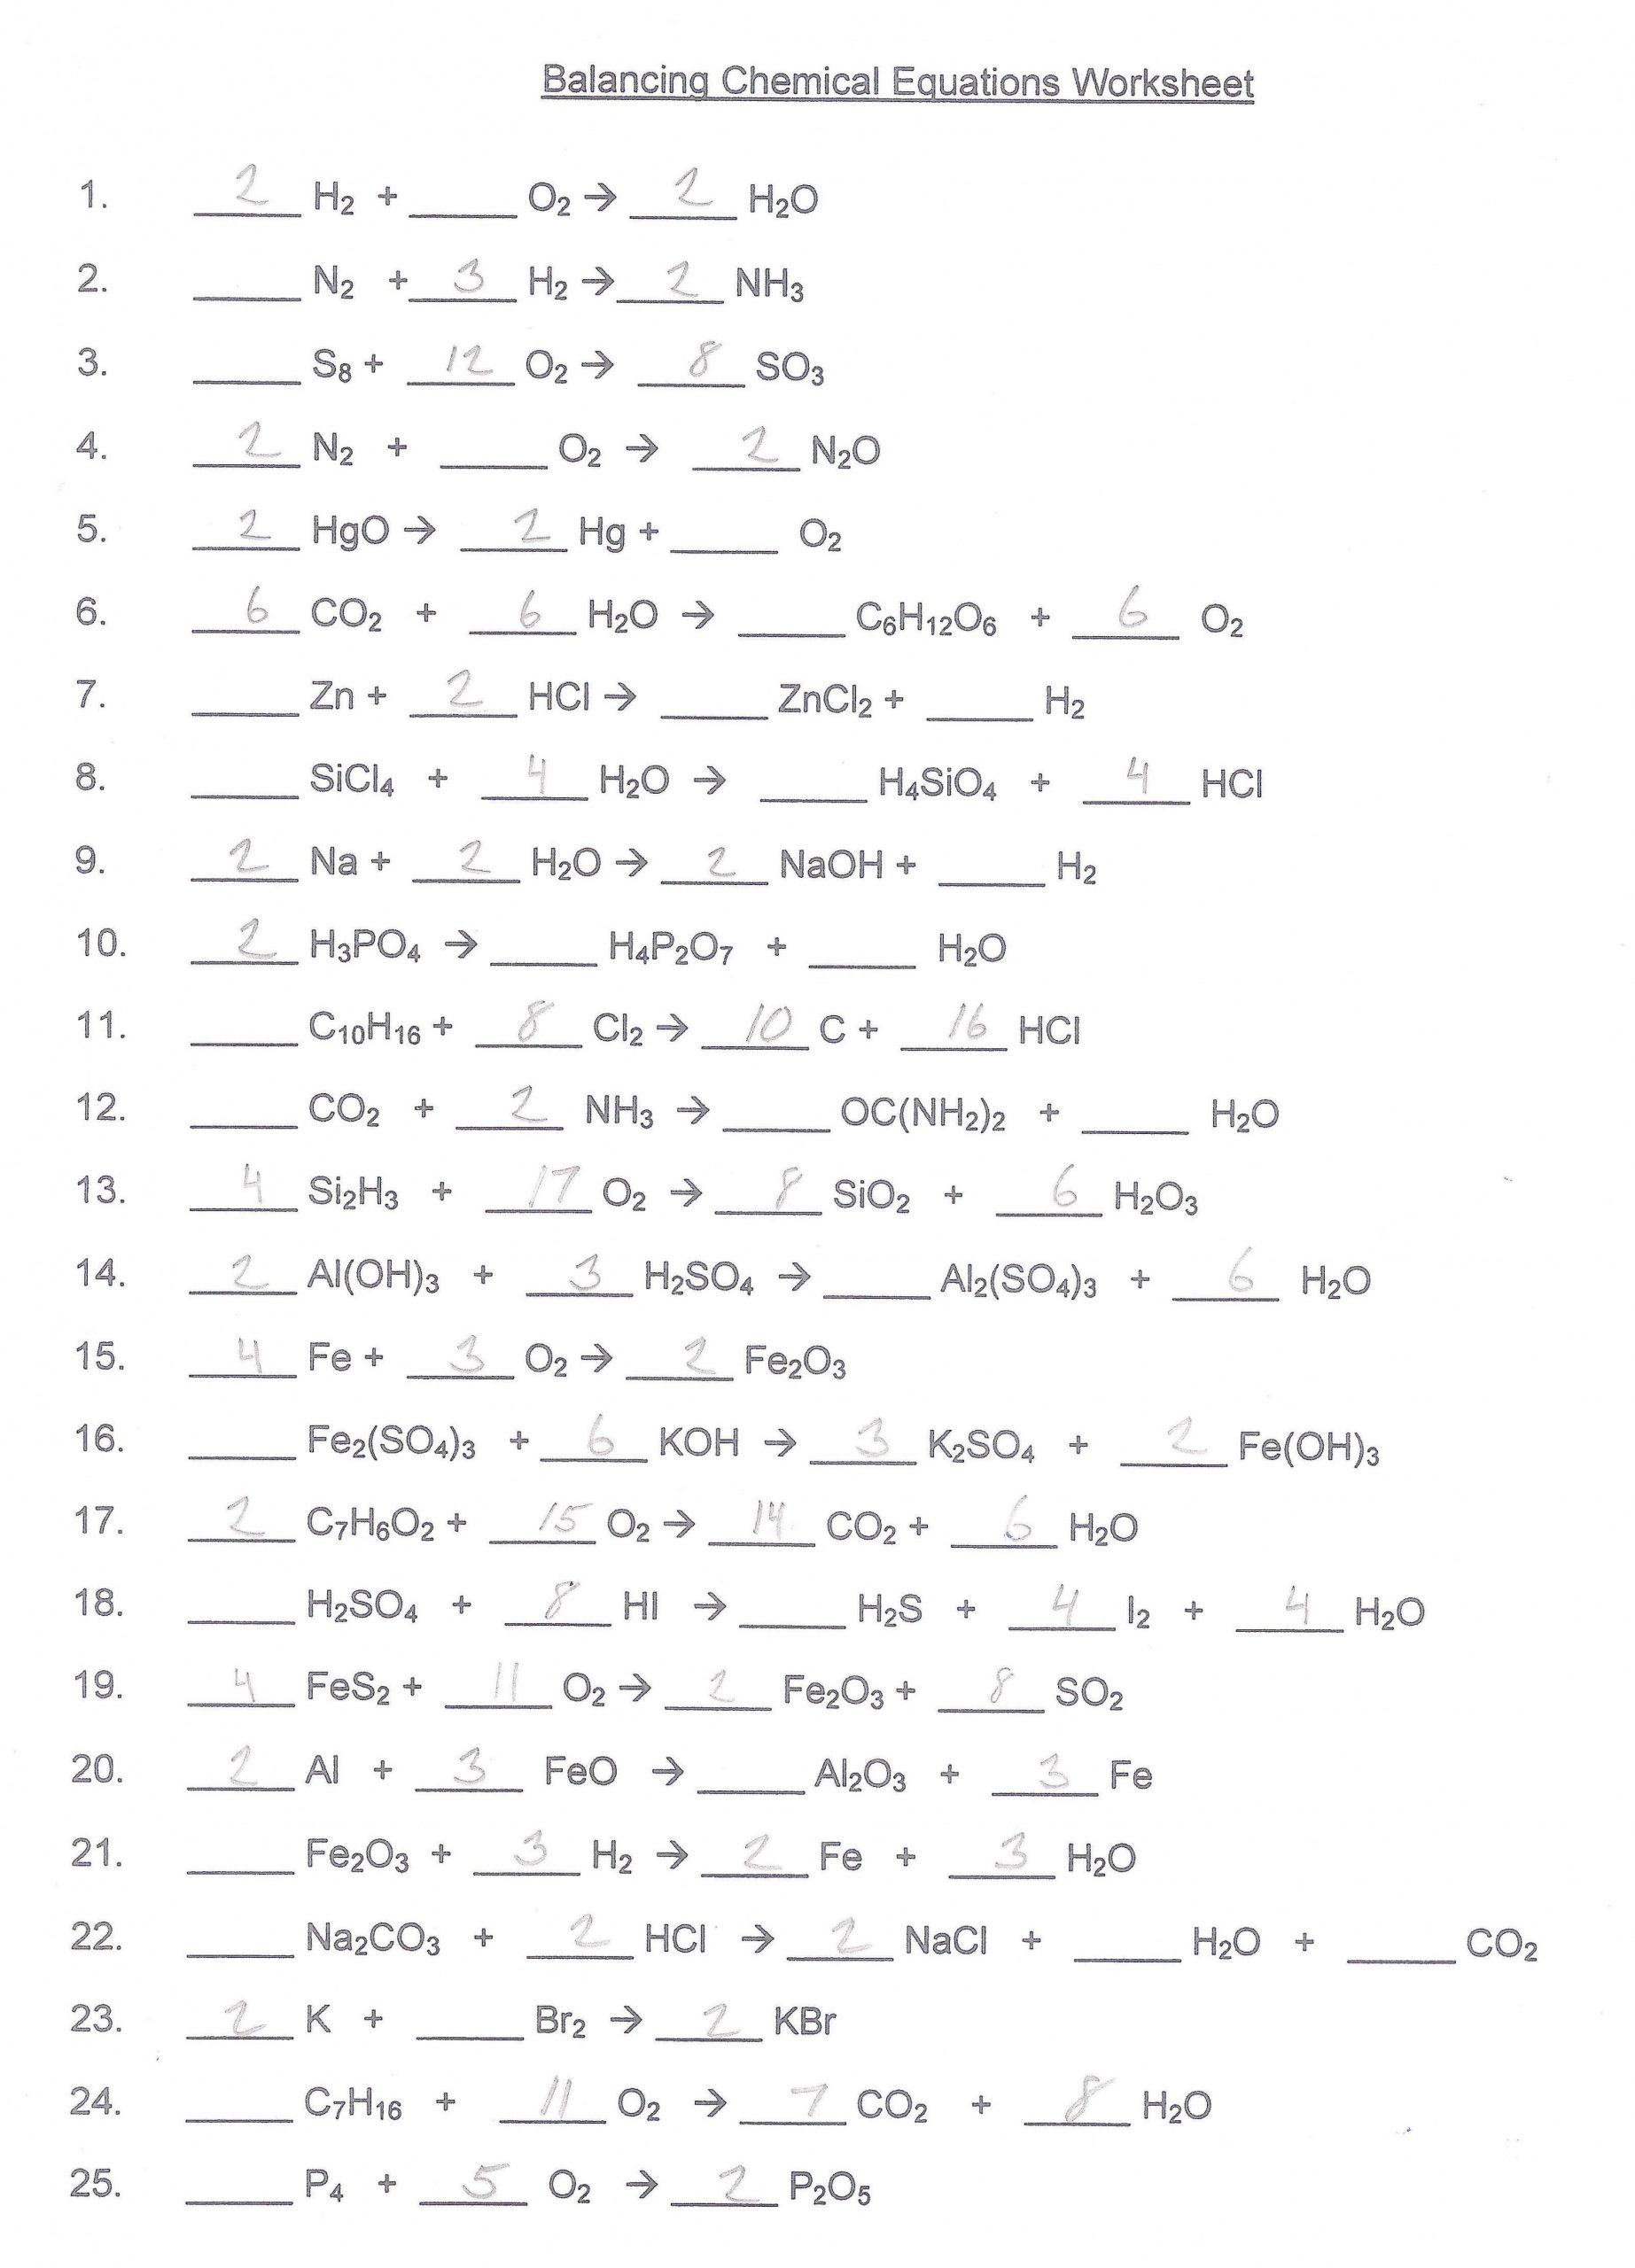 Nuclear Equations Worksheet Answers